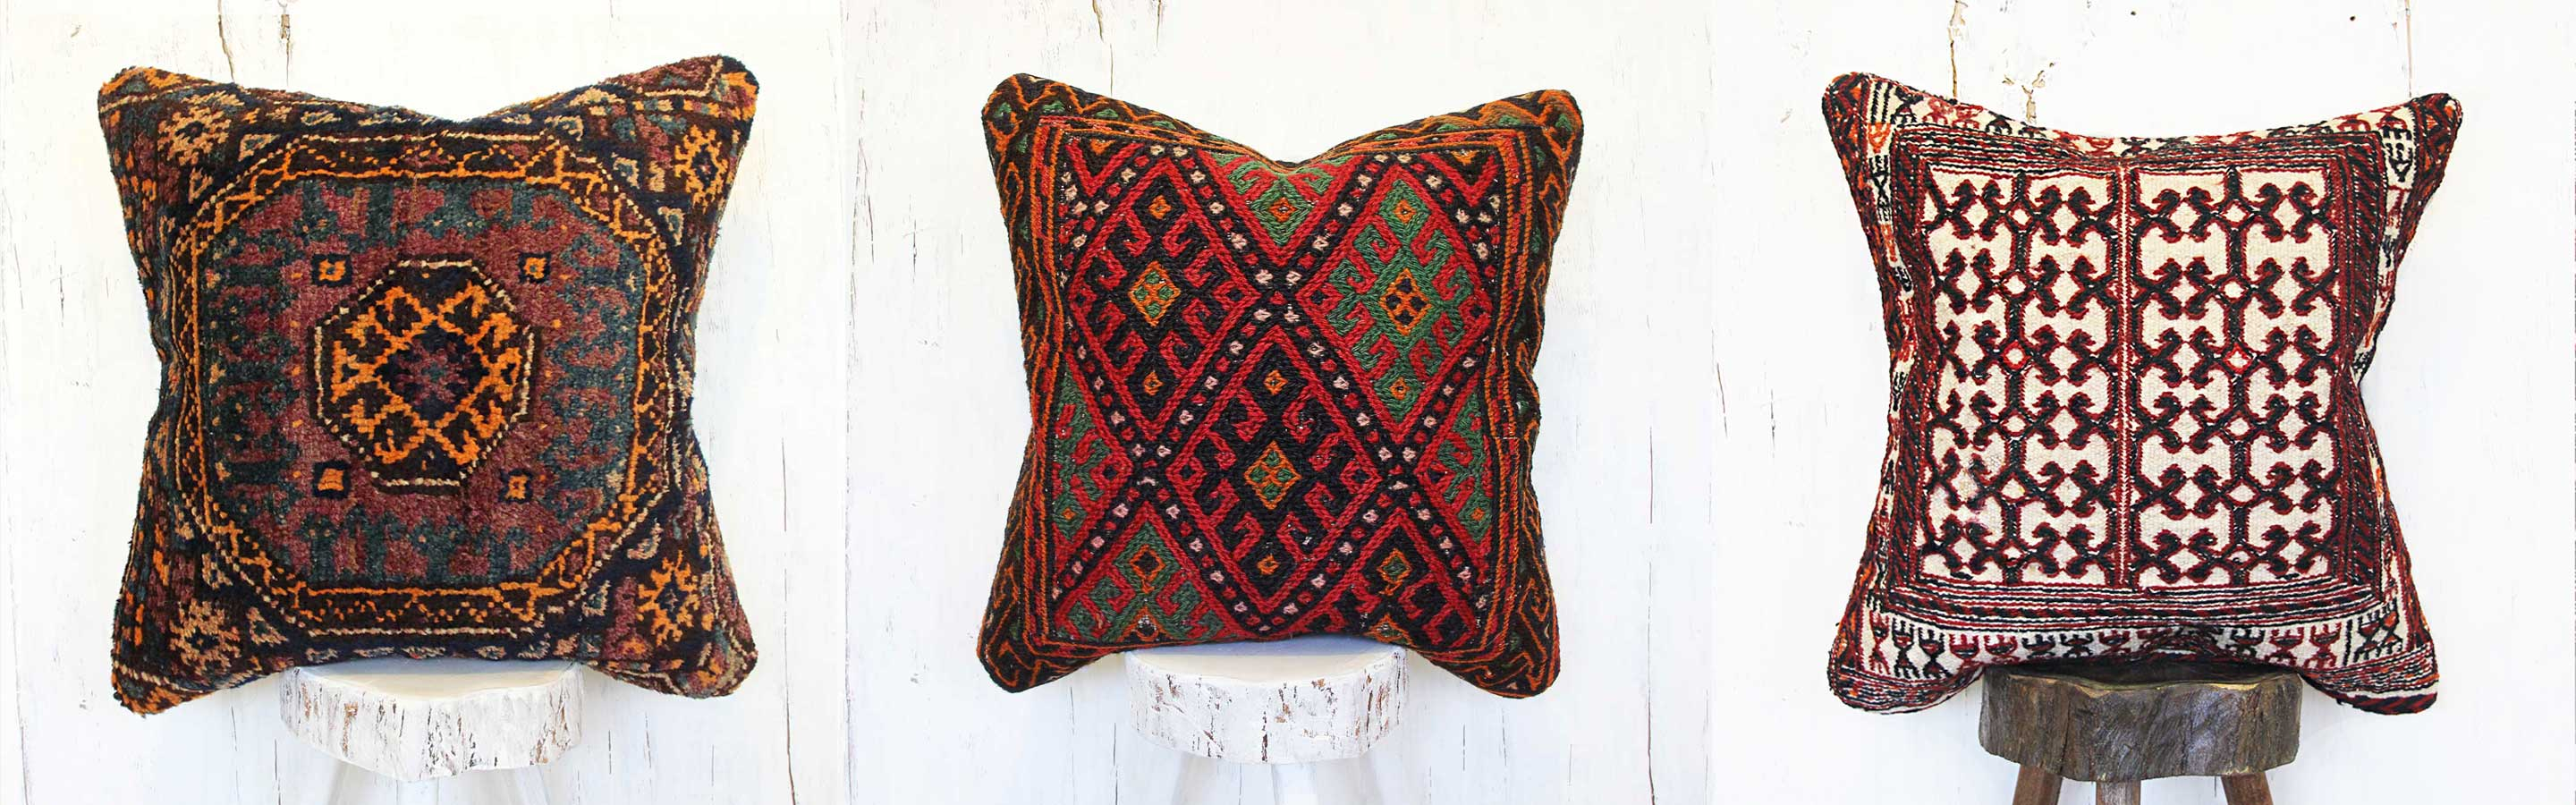 Rug pillows